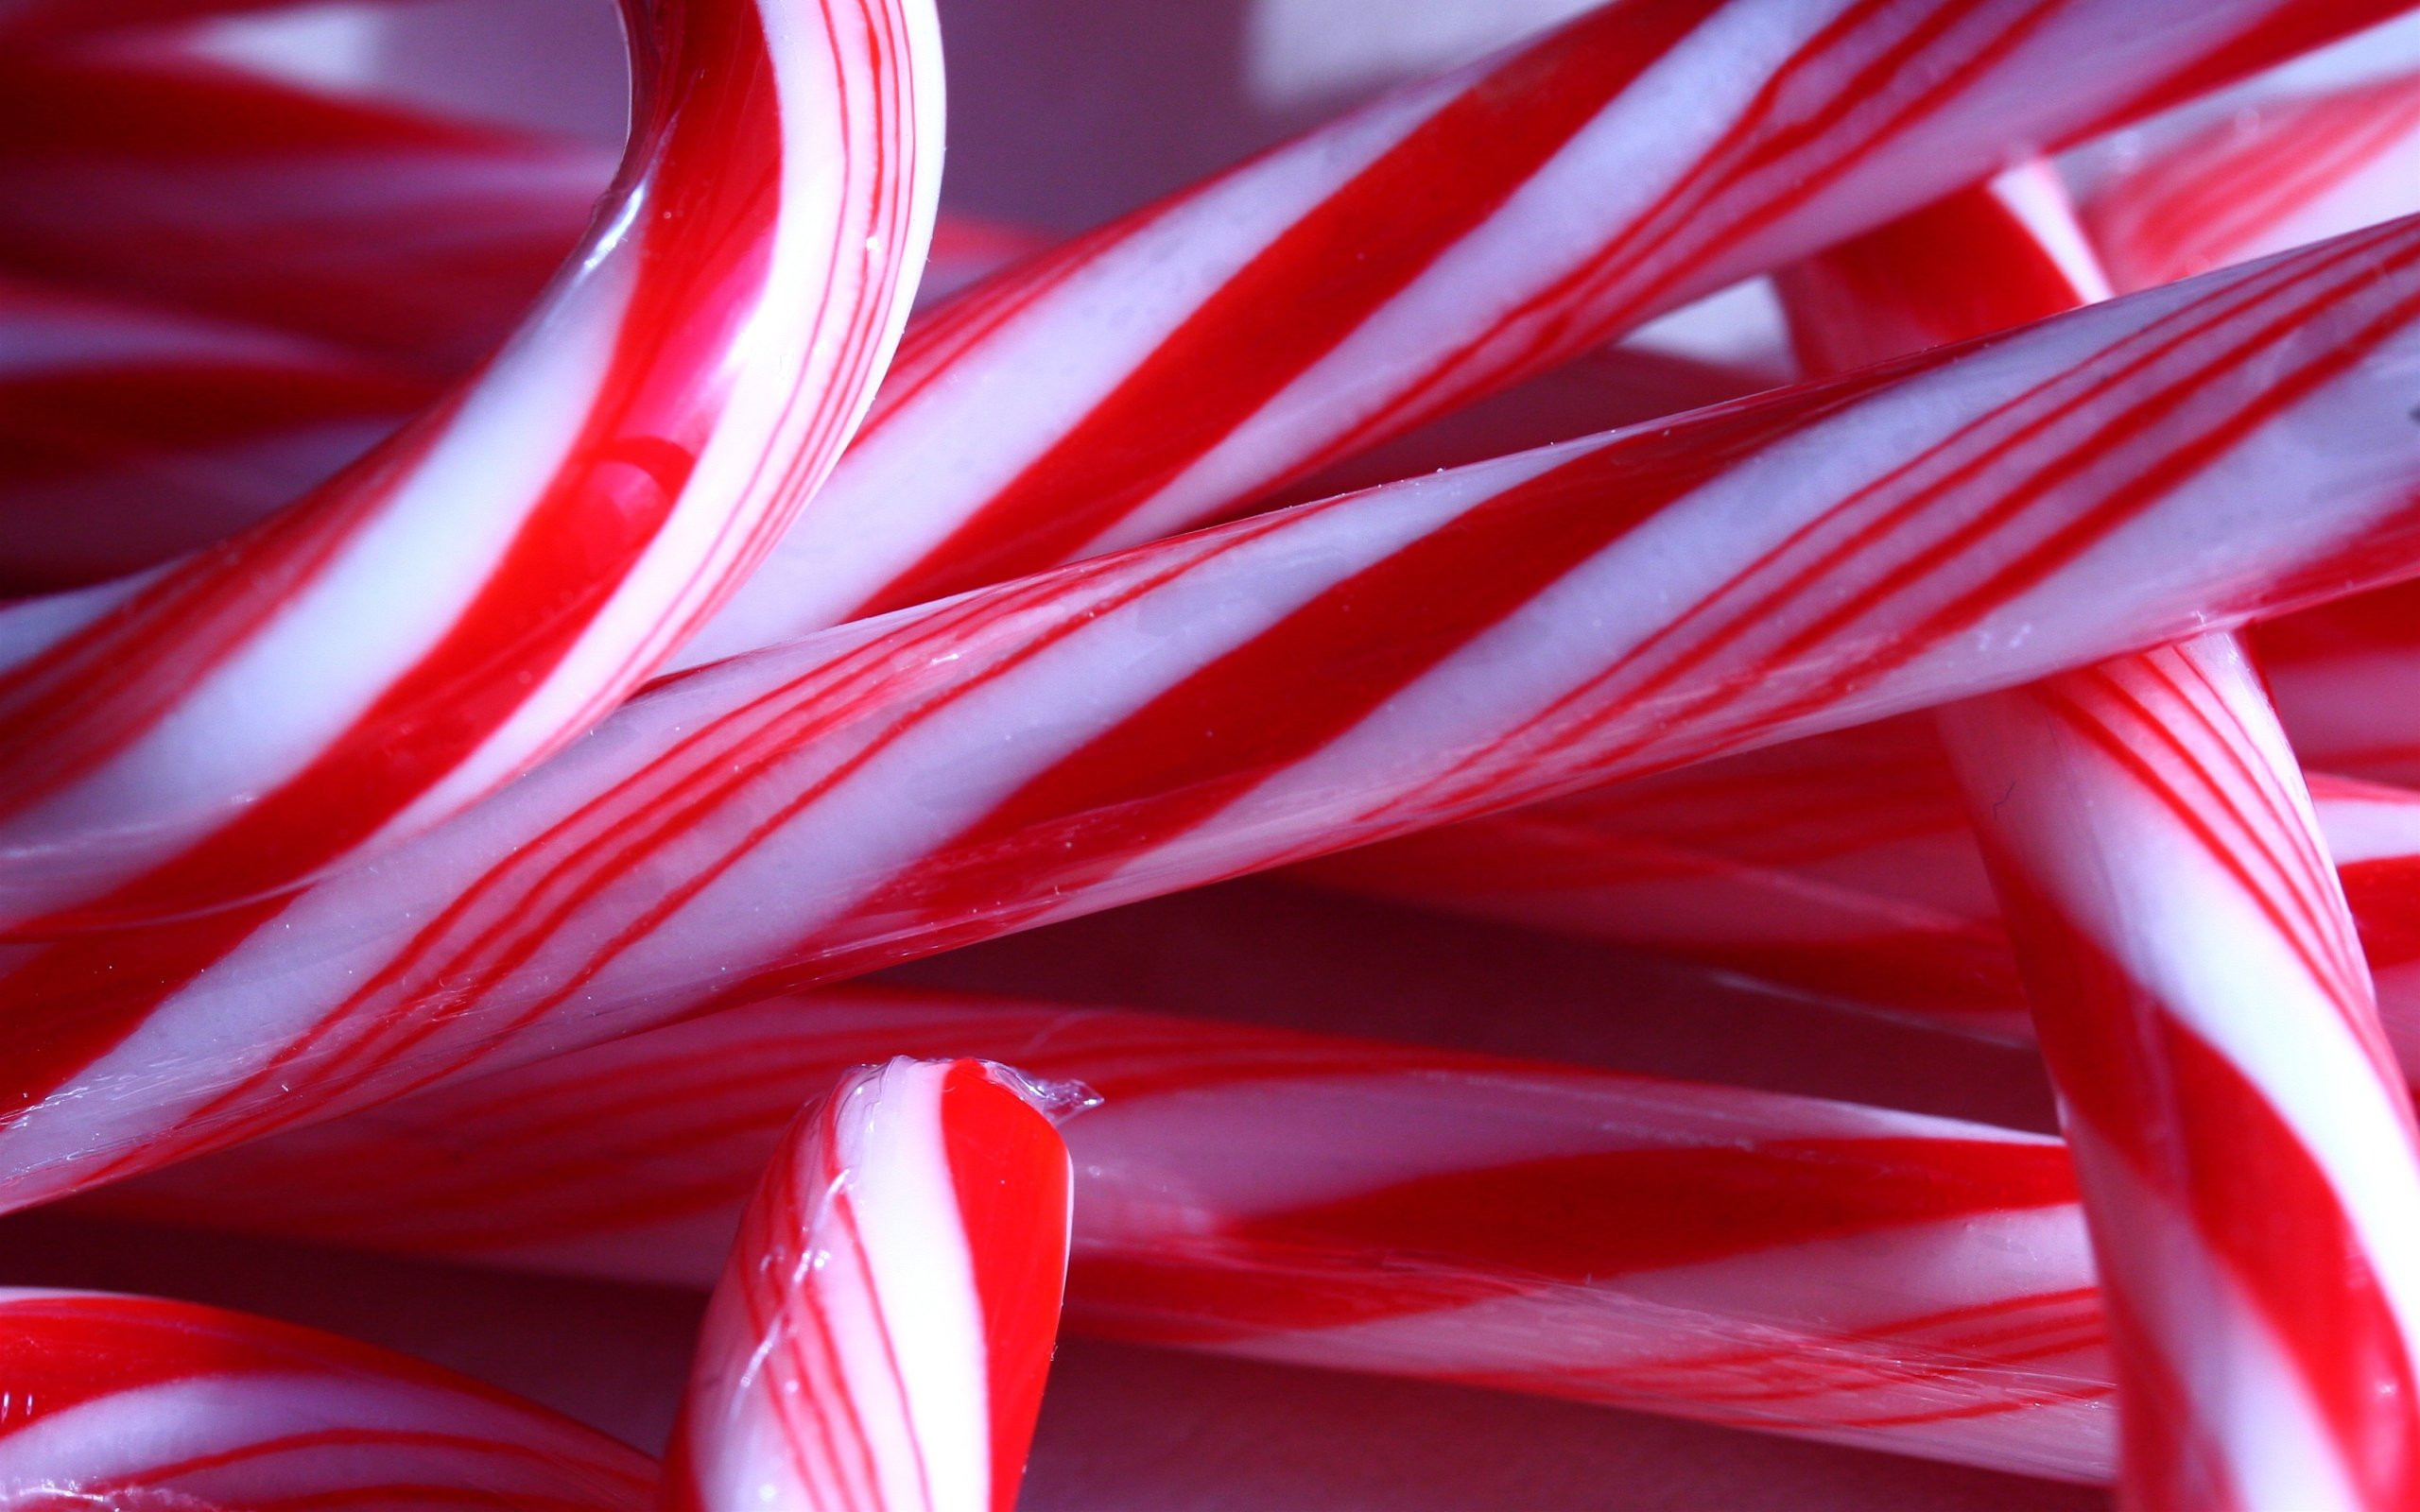 Christmas Candy Wallpaper  Candy canes can s wallpaper